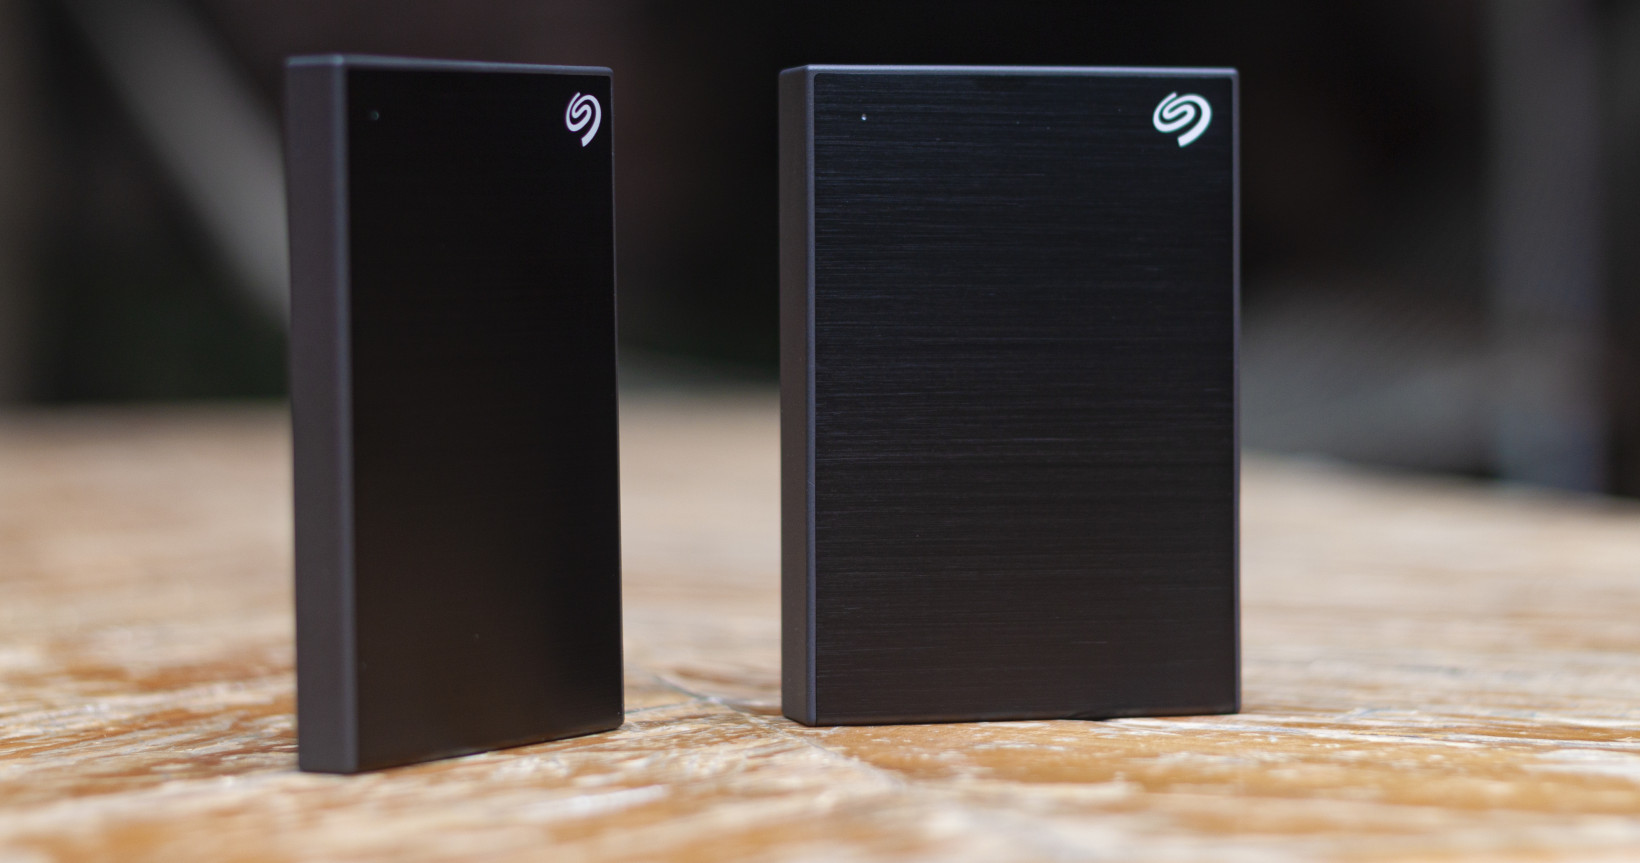 Seagate's compact, budget hard drives are perfect for backing up data on the go